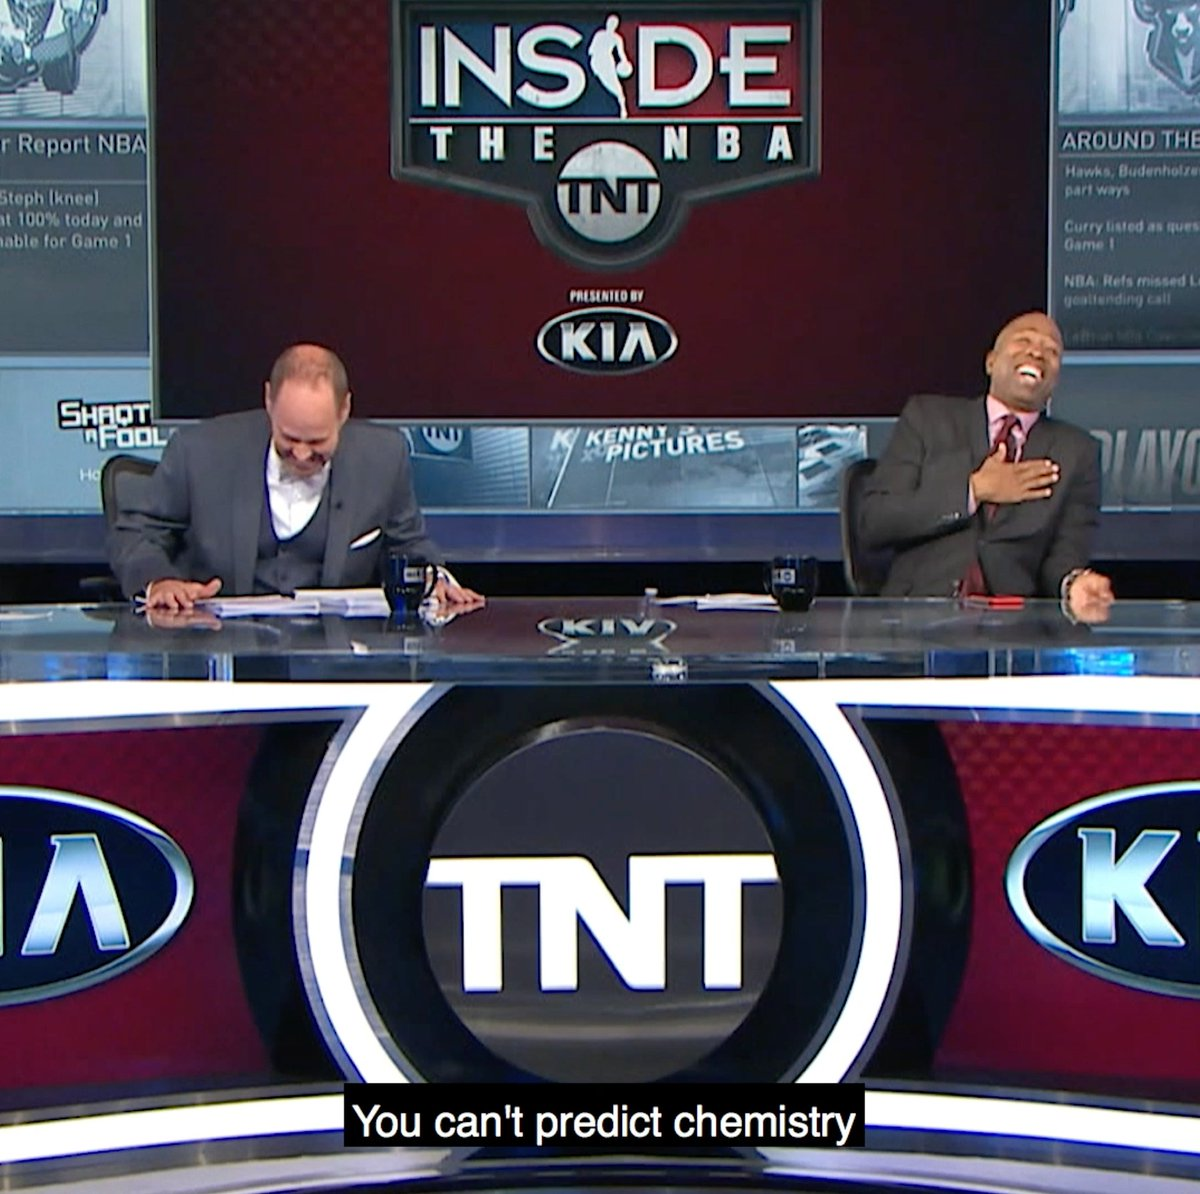 """For 30 years, """"Inside the NBA"""" has been unscripted and unrehearsed. It's the very reason why they've stayed on top.   Watch the premiere of """"The Inside Story"""" on March 4 on @NBAonTNT."""